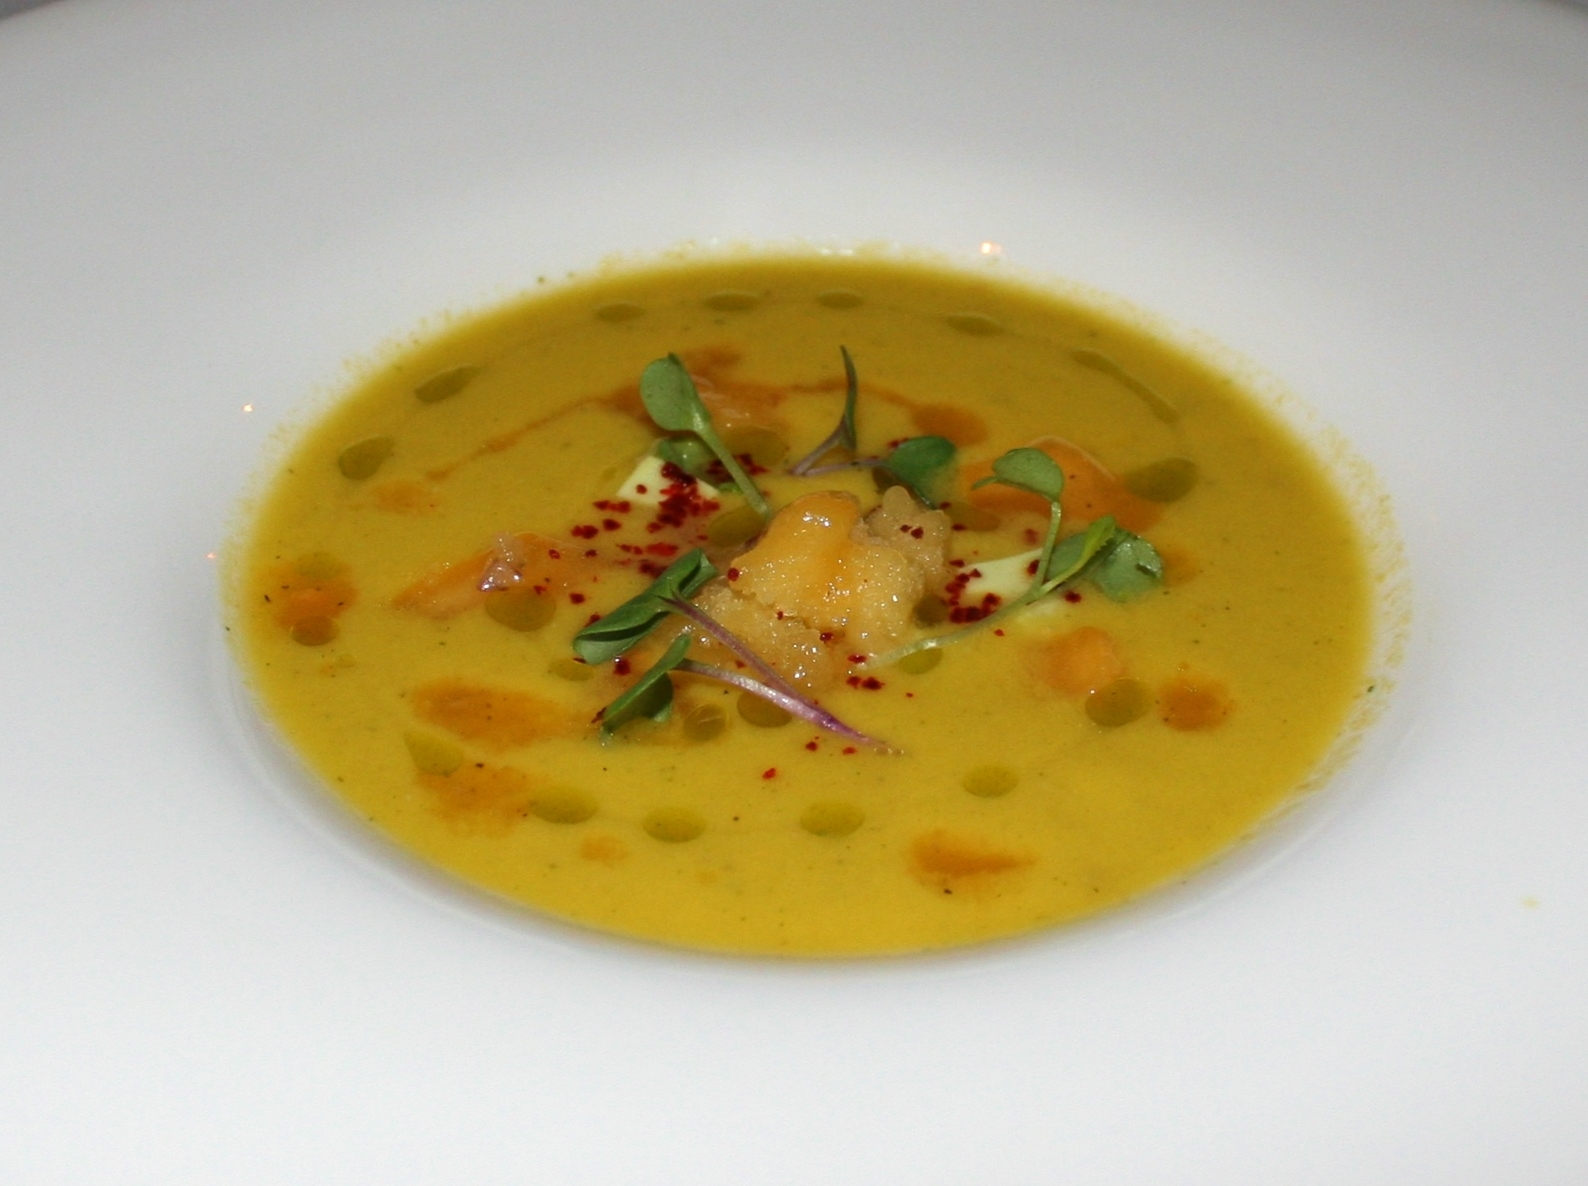 Yellow tomato gazpacho with avocado-lime gelée, peach granité, tarragon oil drizzle.